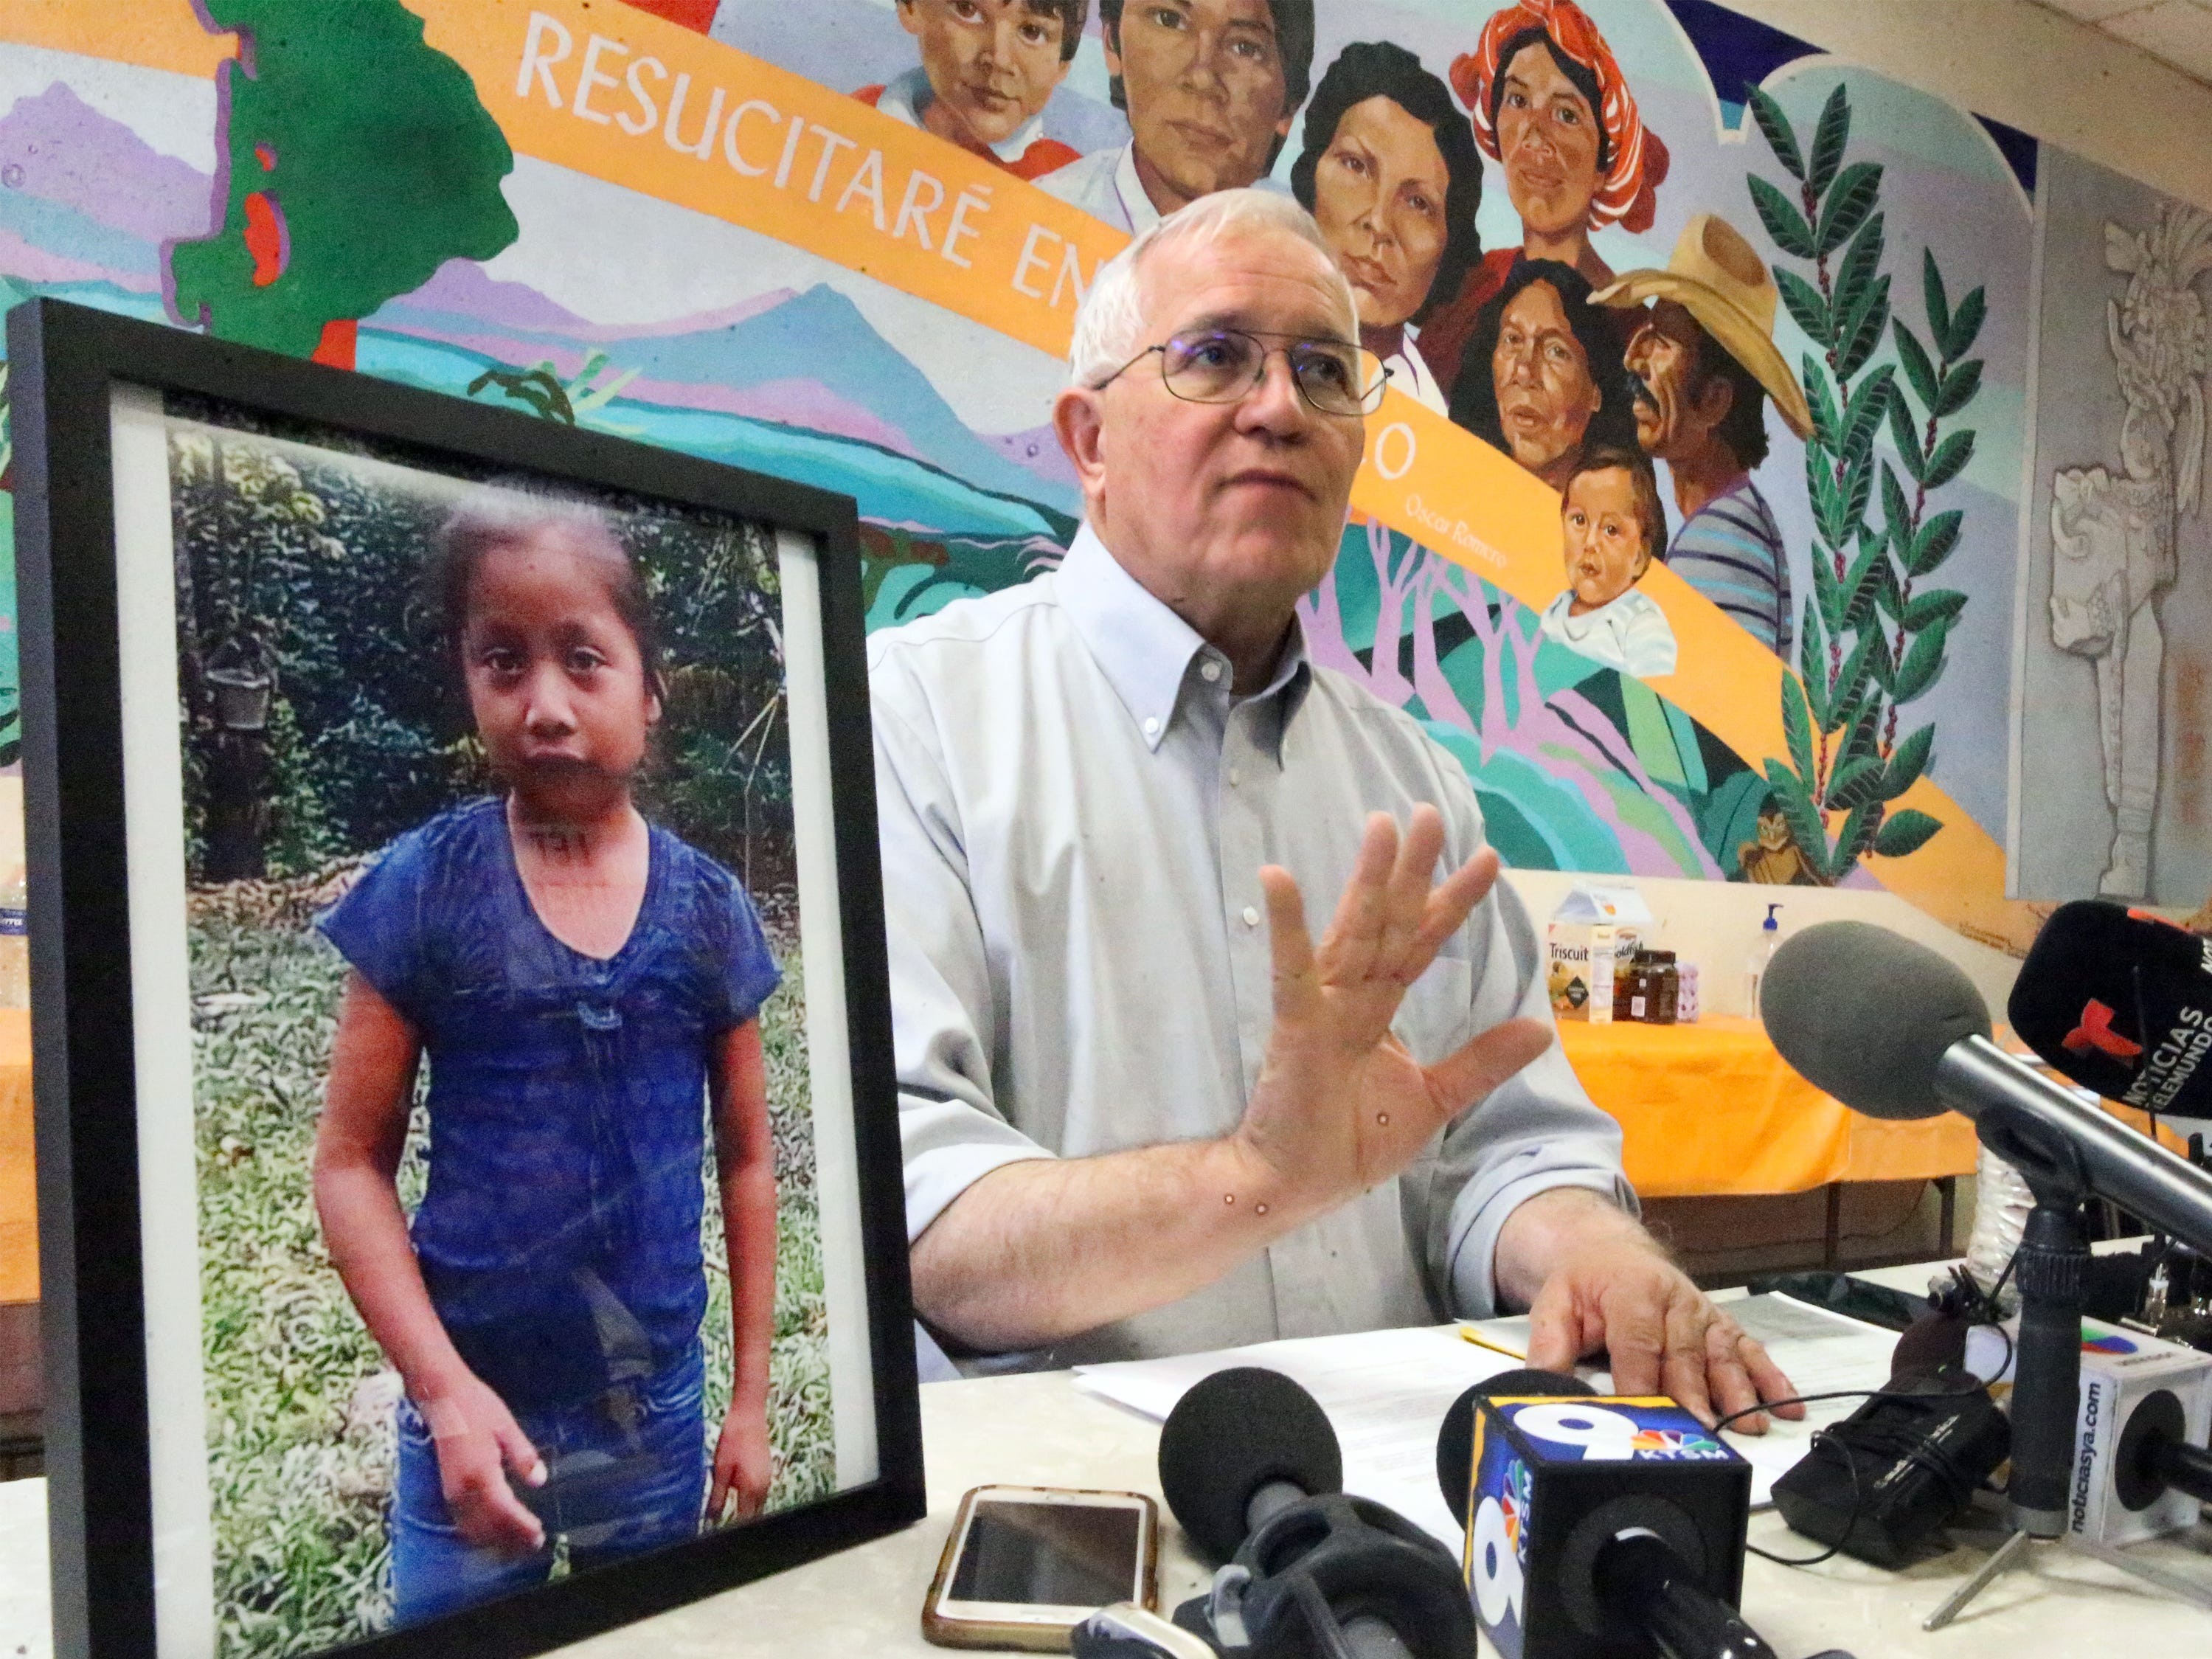 Father of Guatemalan migrant girl who died in El Paso wants thorough investigation